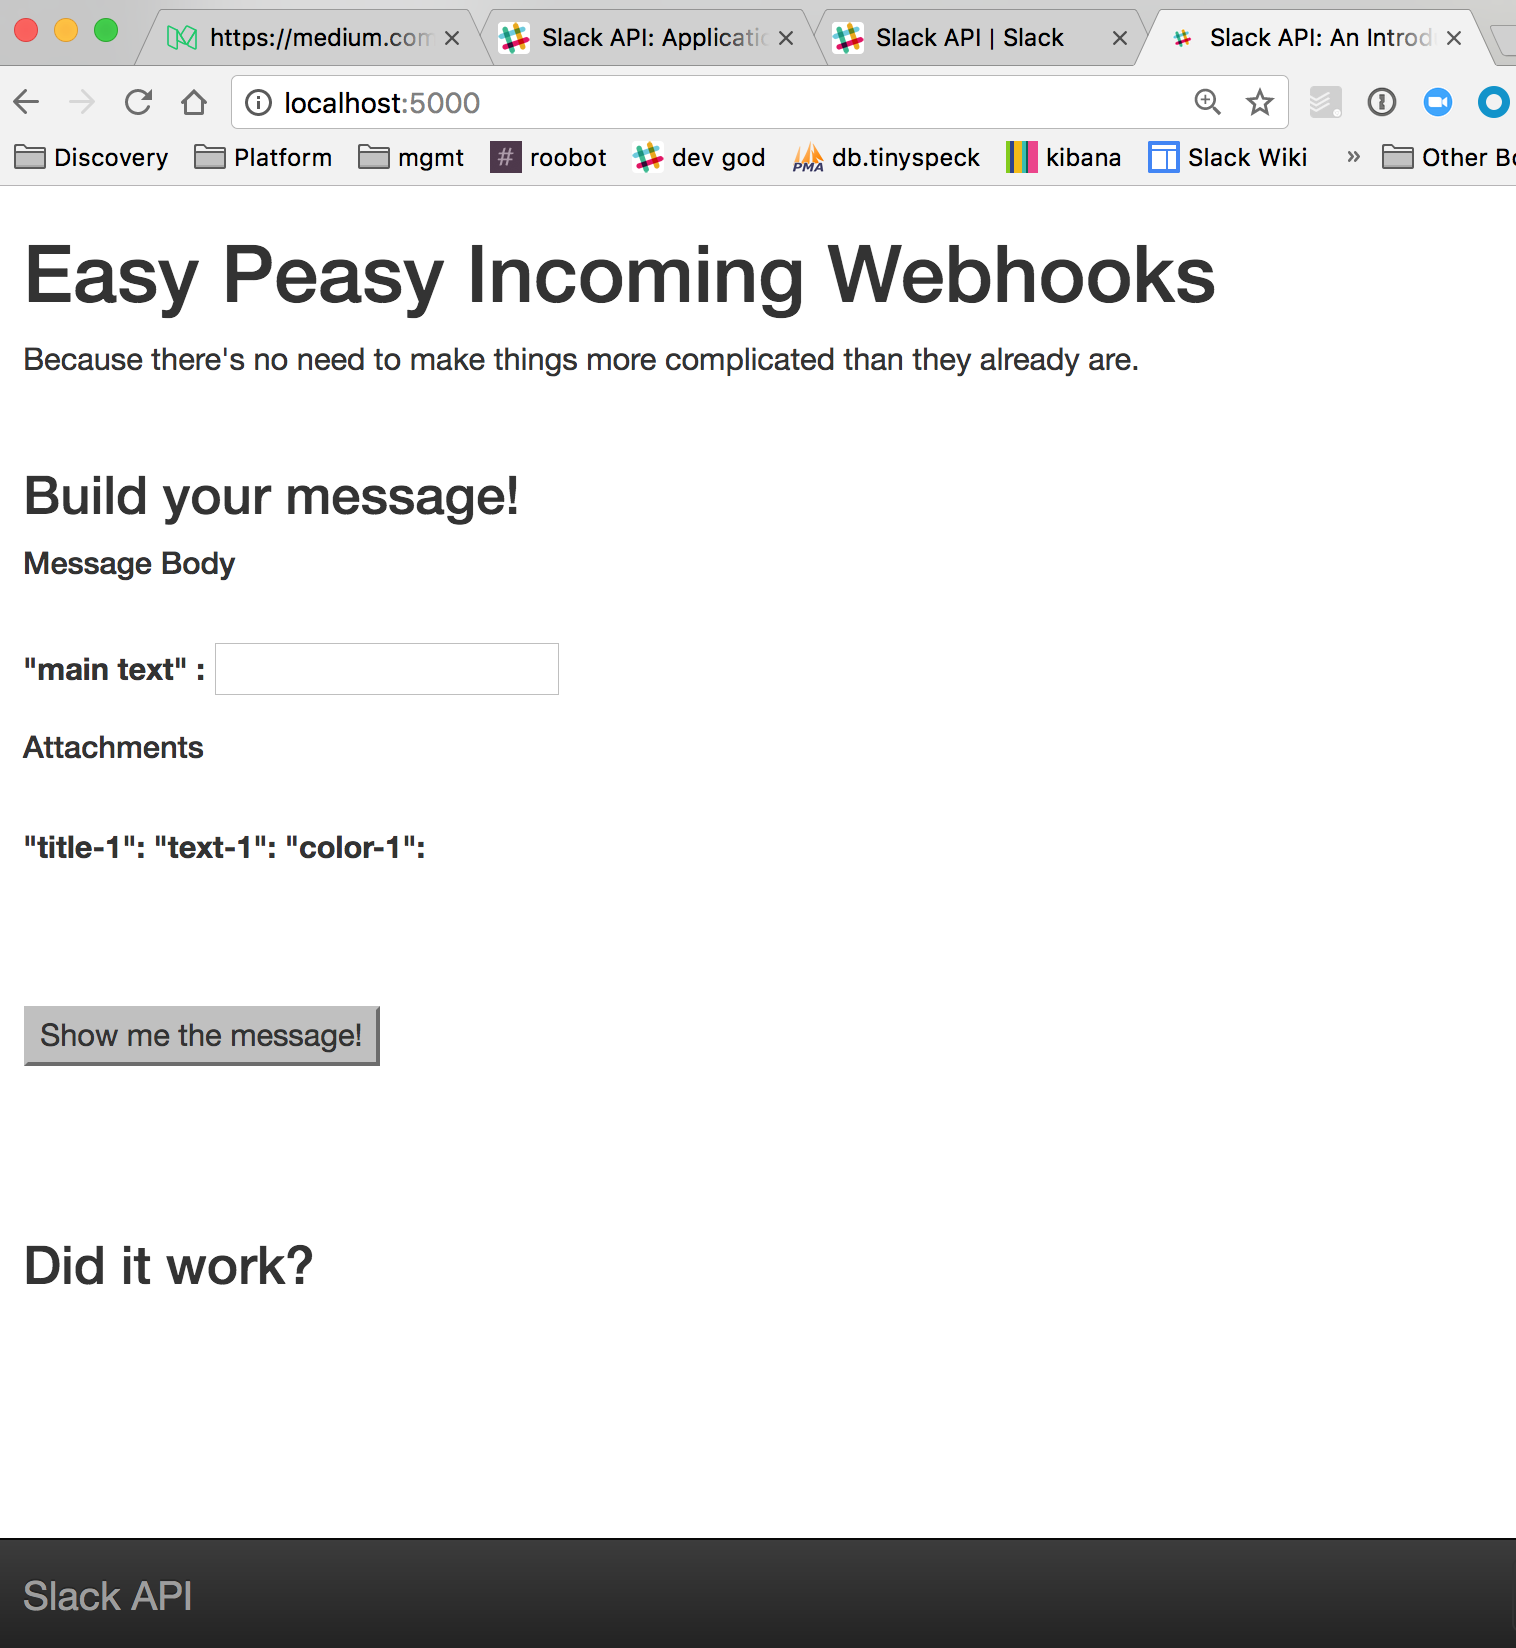 An Introduction to the Slack API: Easy-peasy Incoming Webhooks